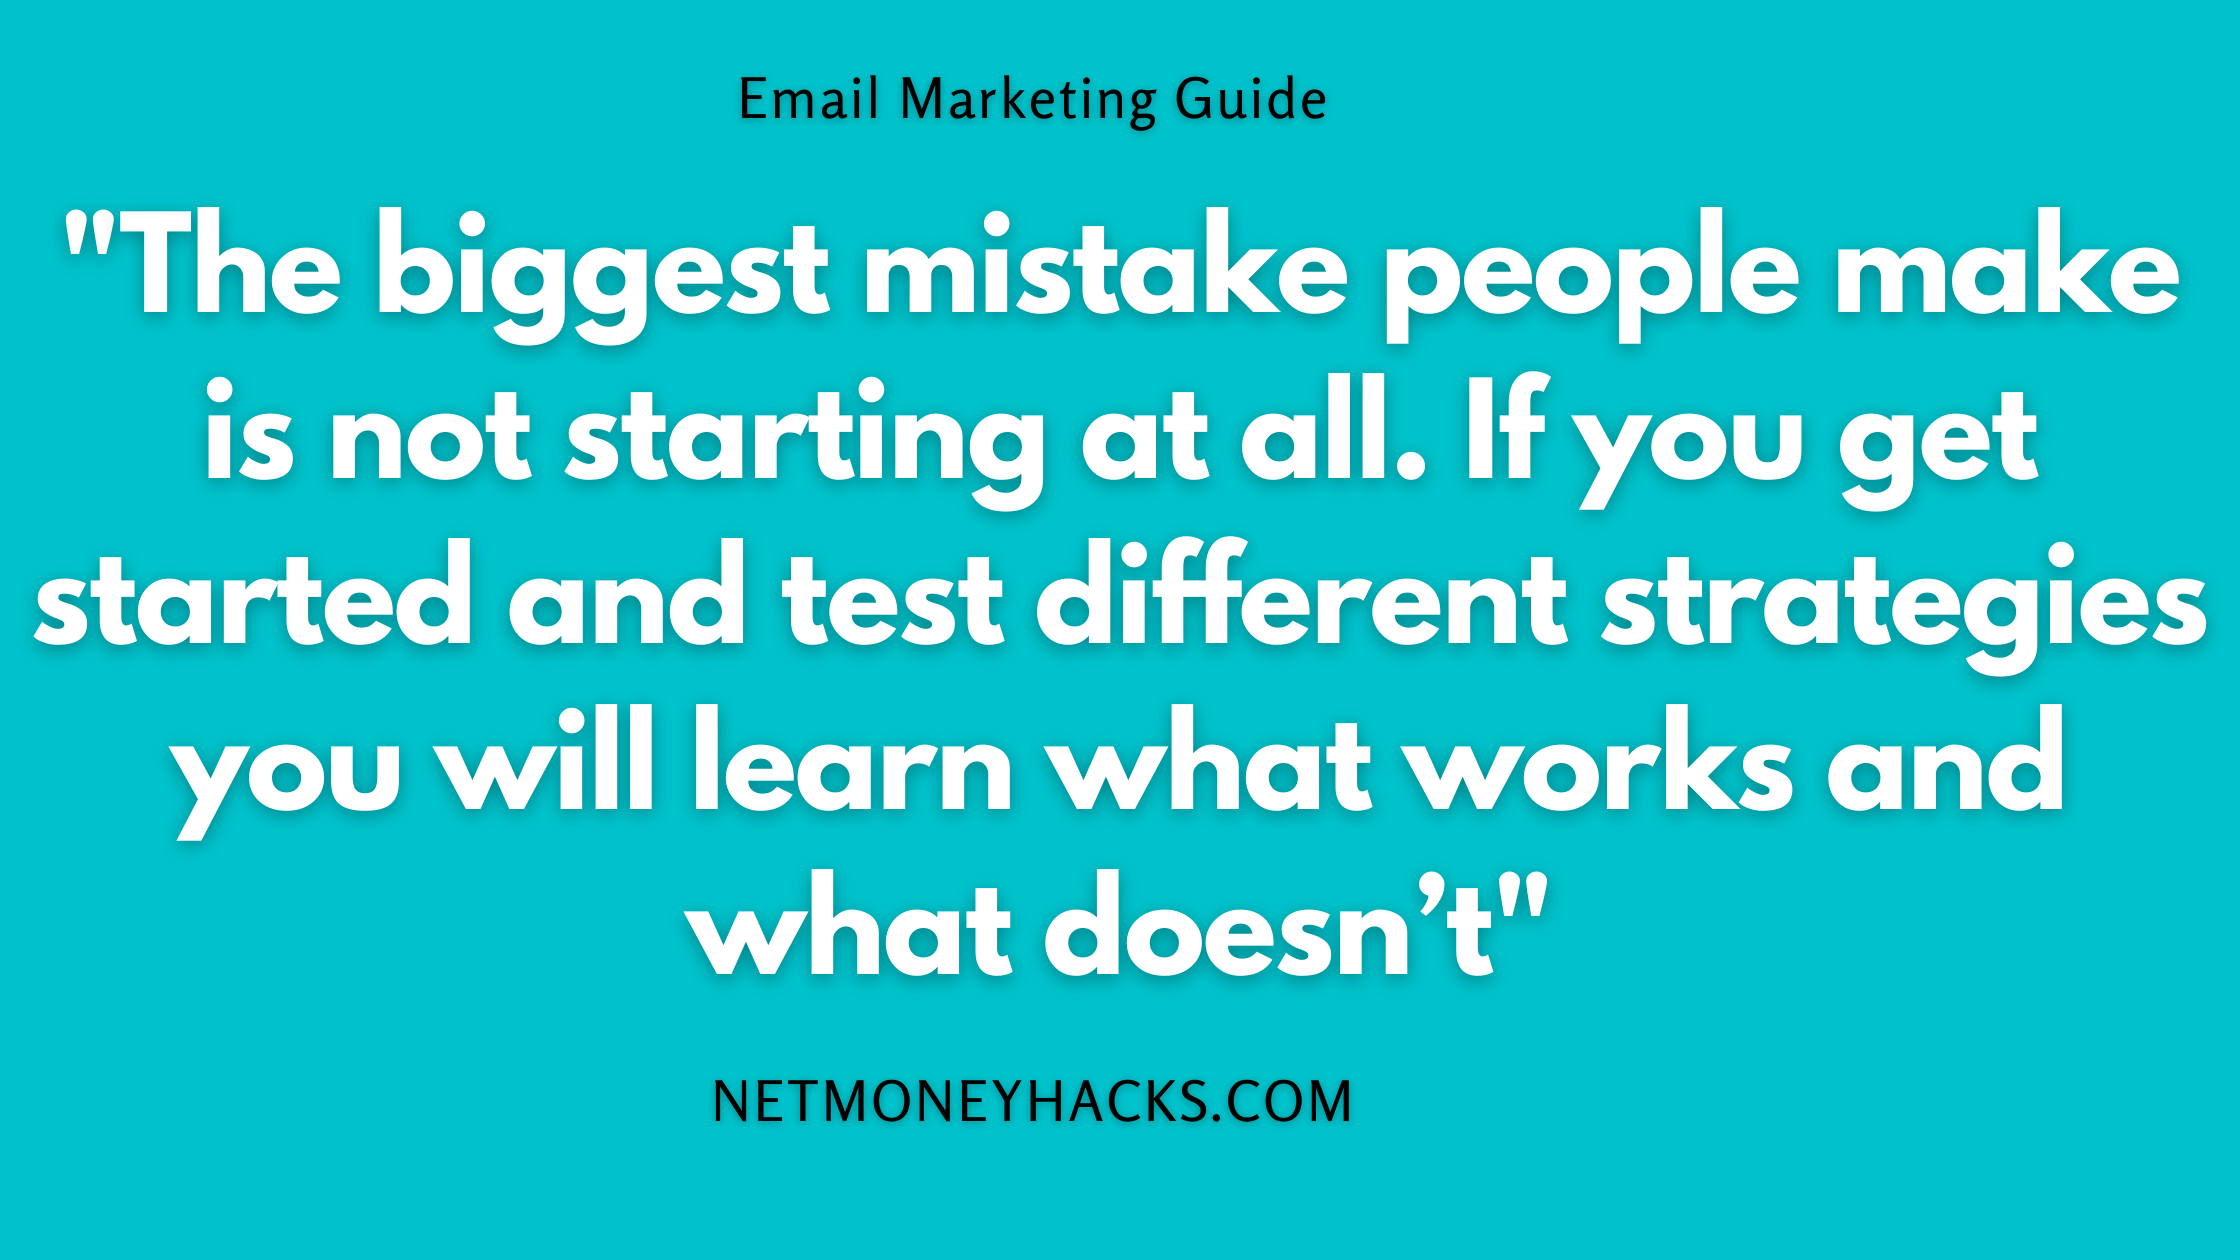 Guide To Starting Email Marketing In 6 Easy Steps 6